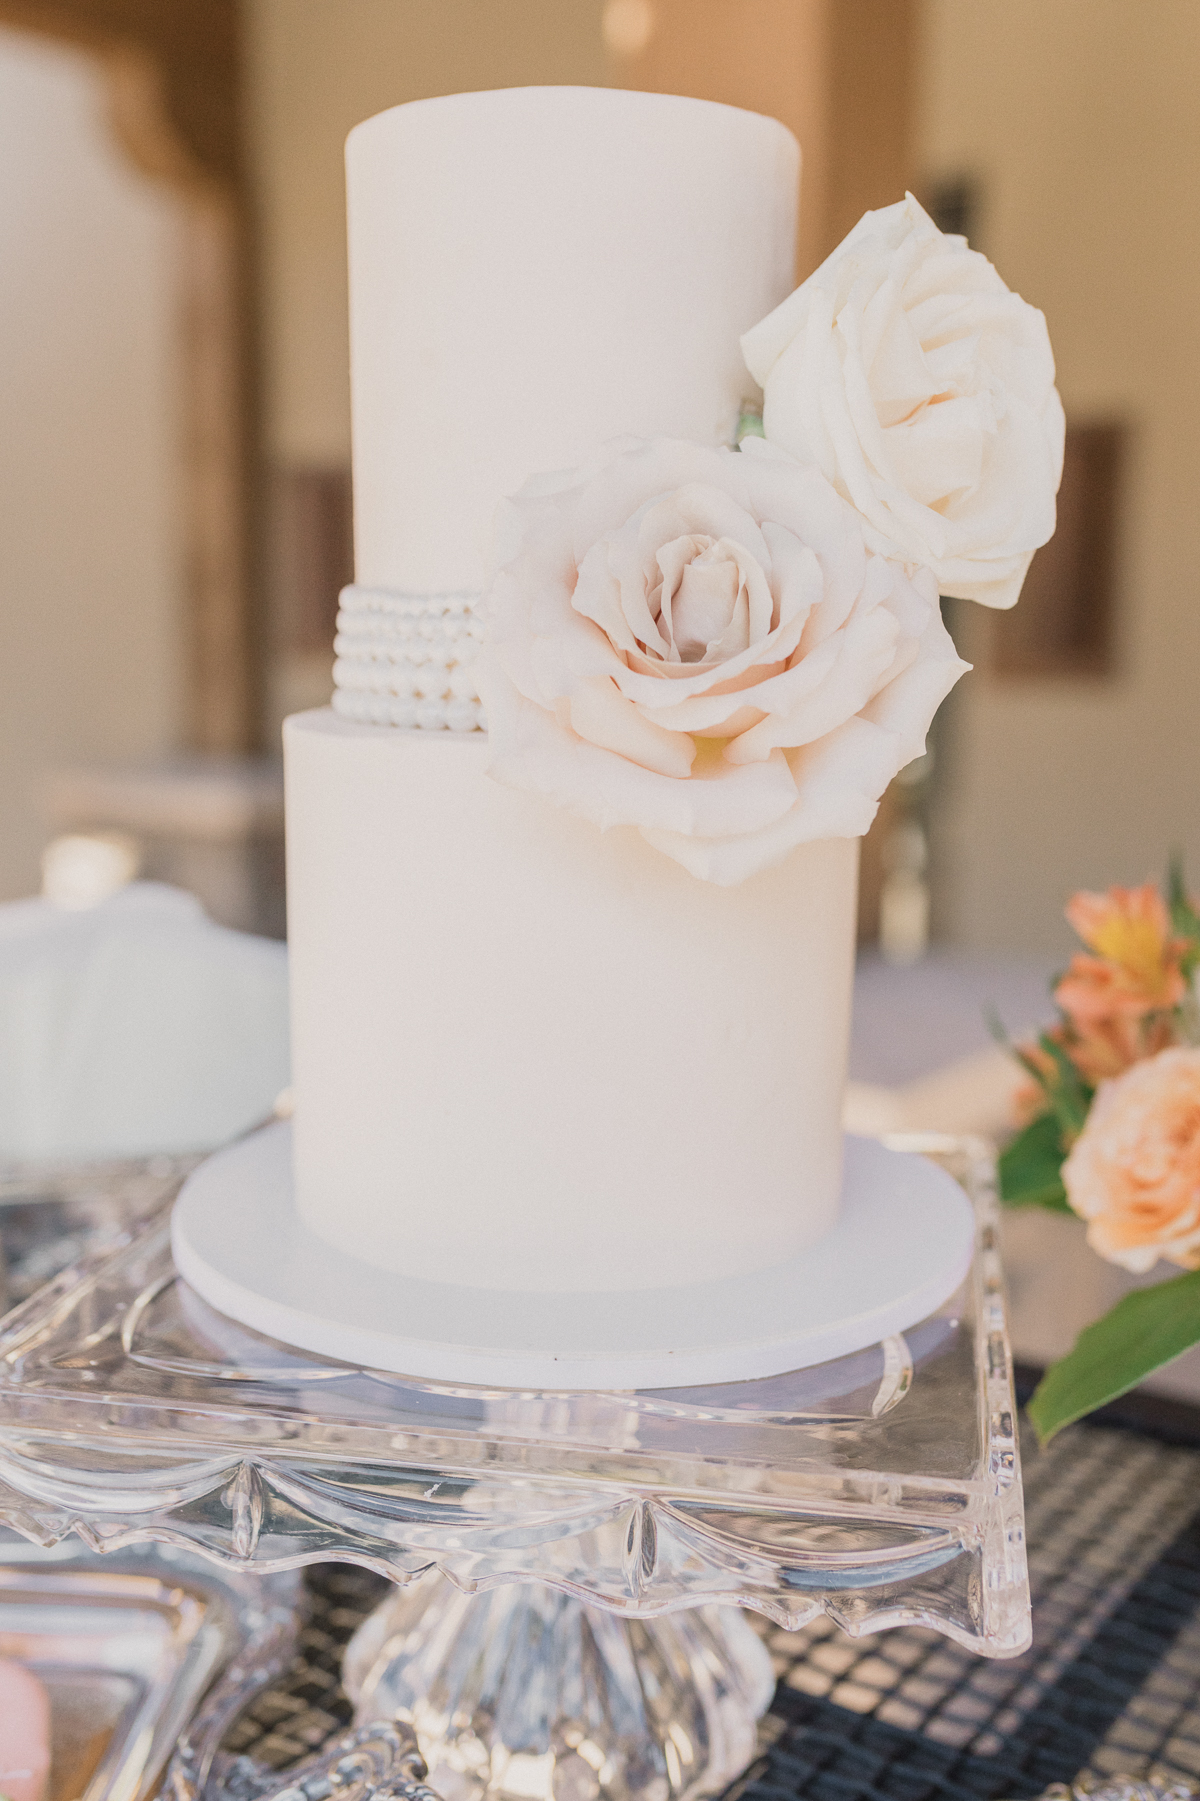 Megan Claire Photography | Arizona Wedding Photographer.  Elegant Scottsdale Backyard Wedding Cake